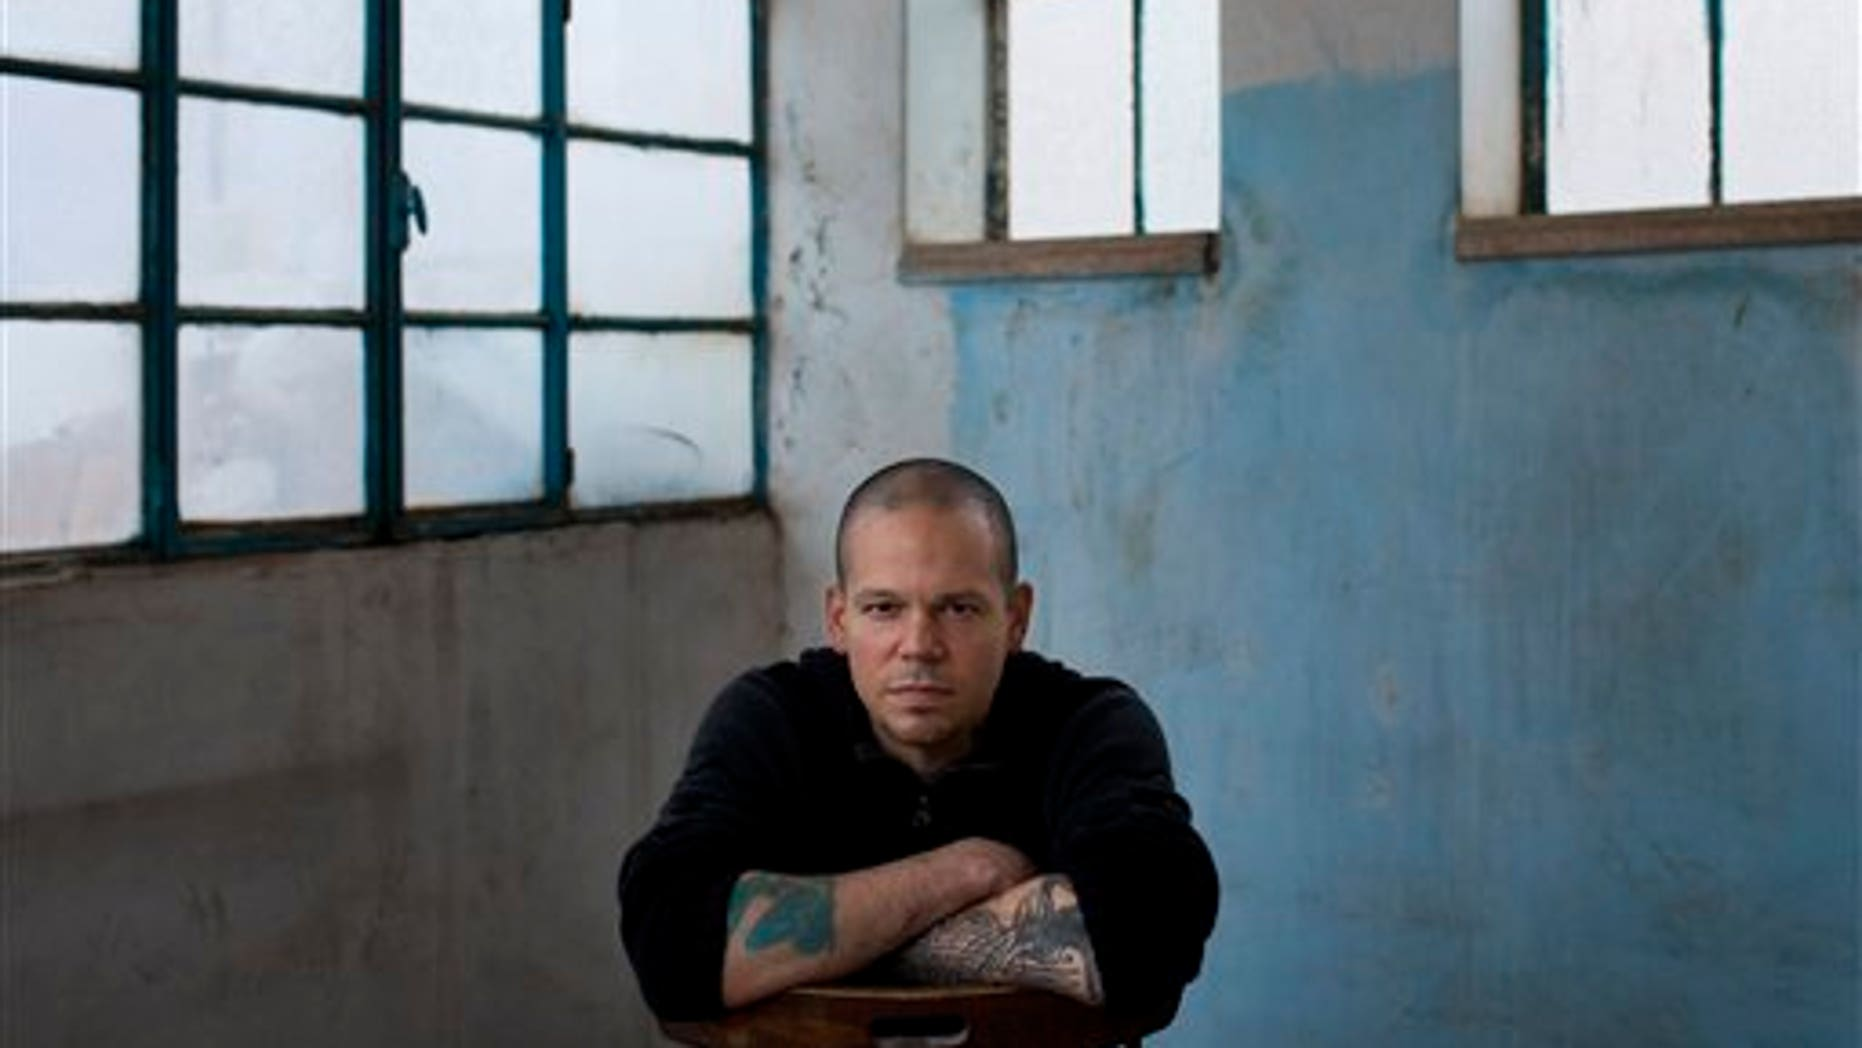 """Rene Perez Joglar, also known as Residente, of Puerto Rico's musical group Calle 13, poses for a portrait after an interview with The Associated Press in the West Bank town of Beit Shaour, near Bethlehem, Thursday, Dec. 5, 2013. Perez has been in the West Bank filming Calle 13's next video called """"Multi Viral."""" (AP Photo/Bernat Armangue)"""